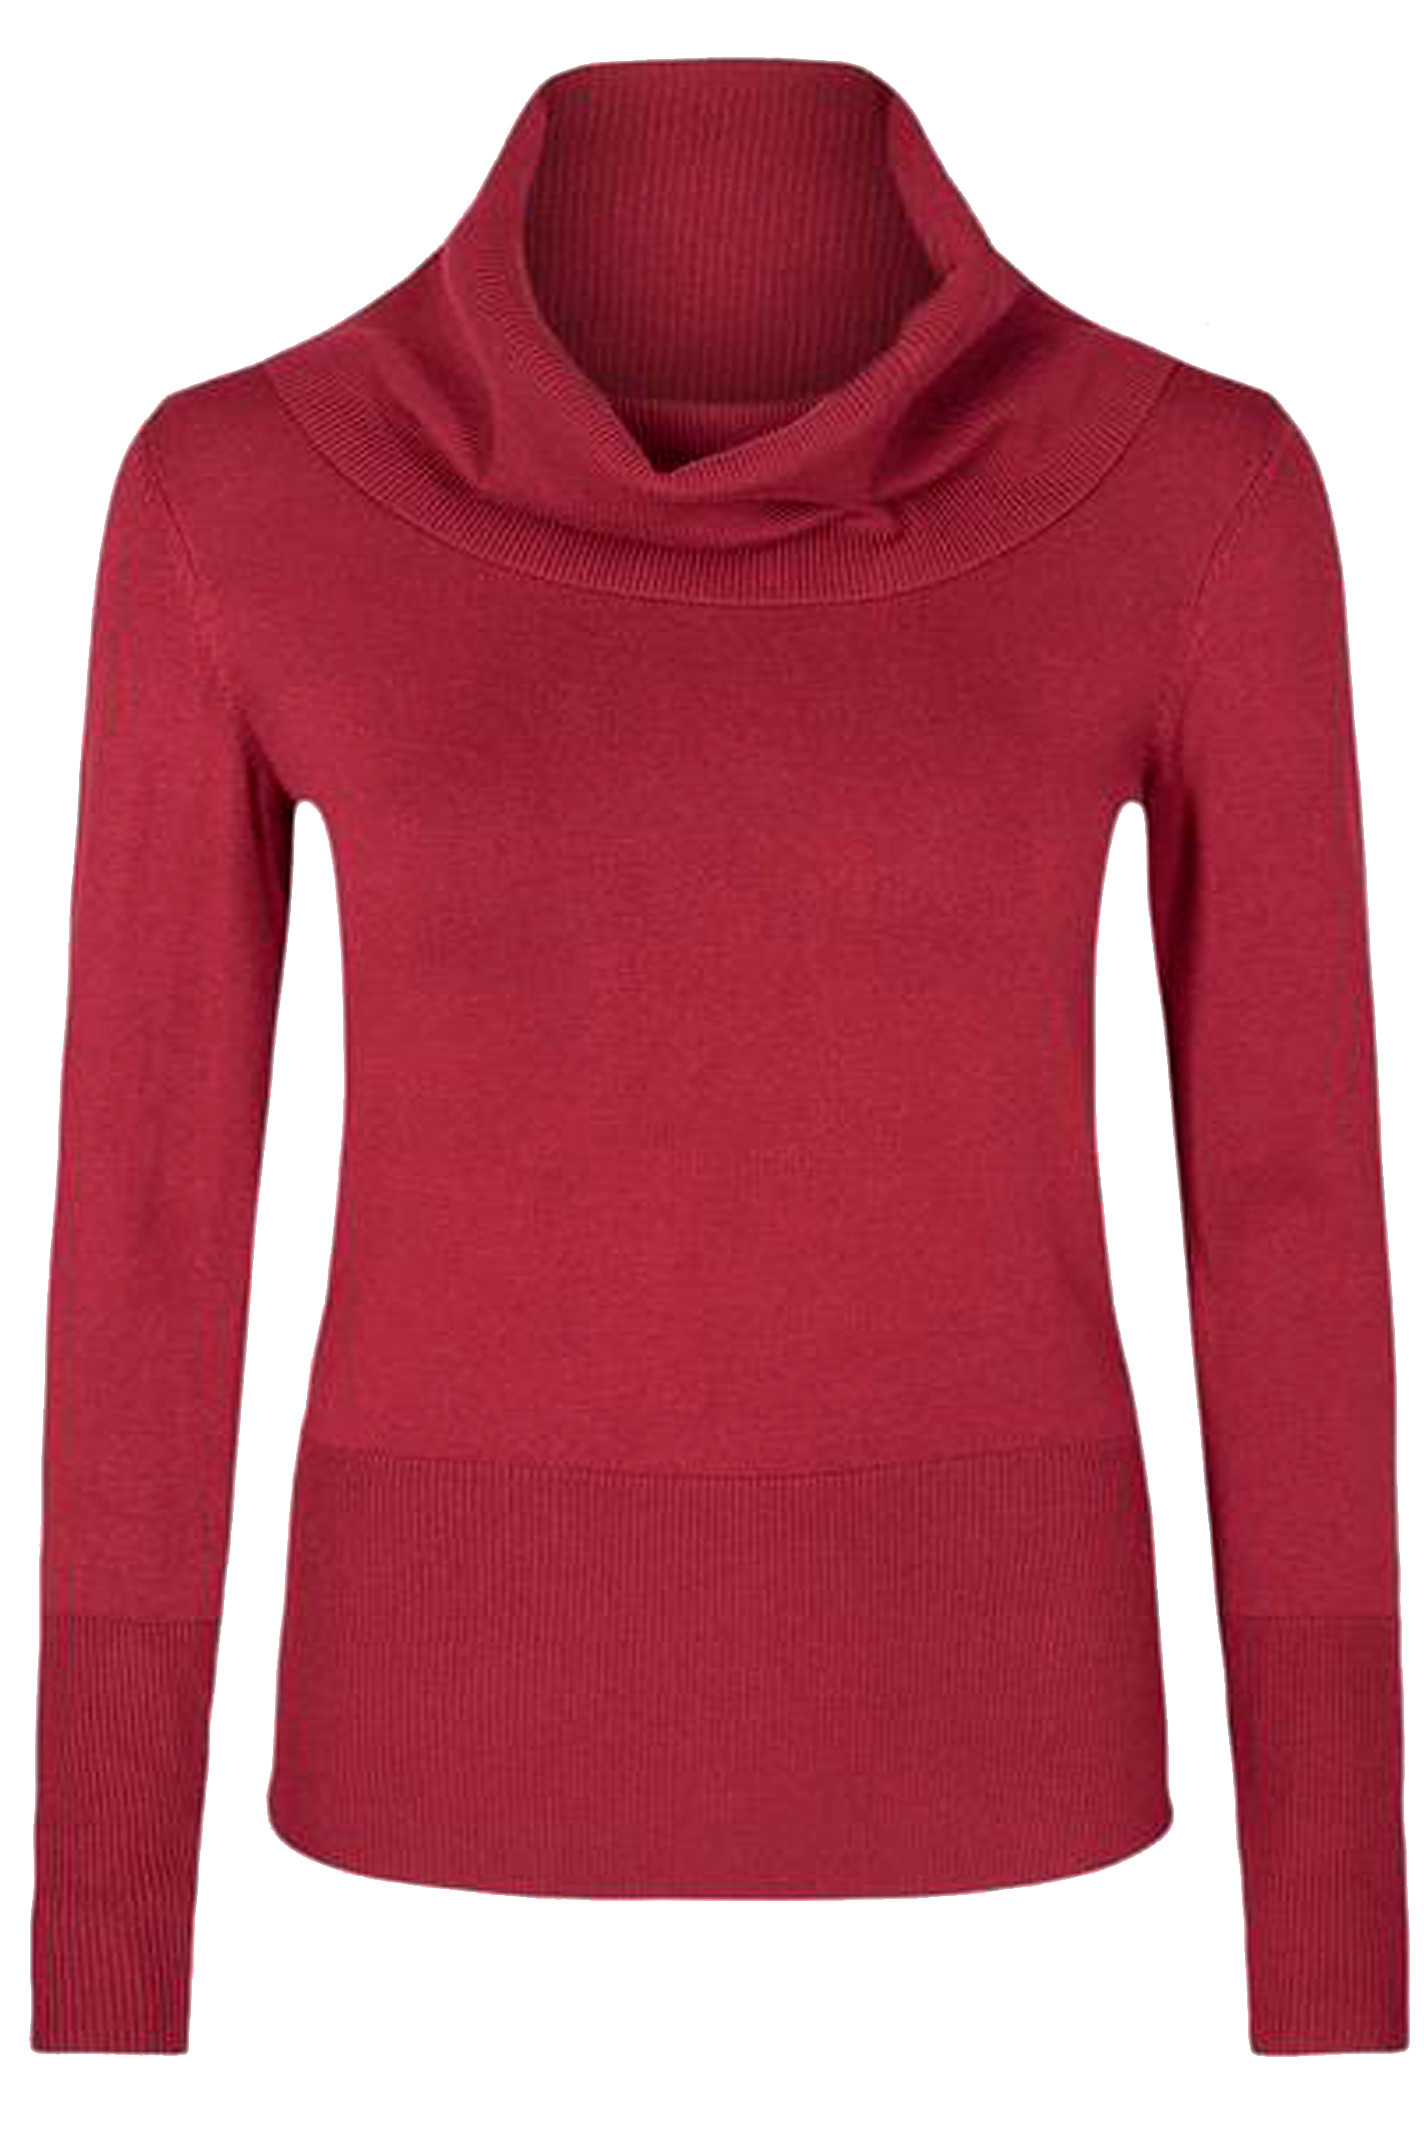 SOYACONCEPT DOLLIE 305 NY DEEP RED